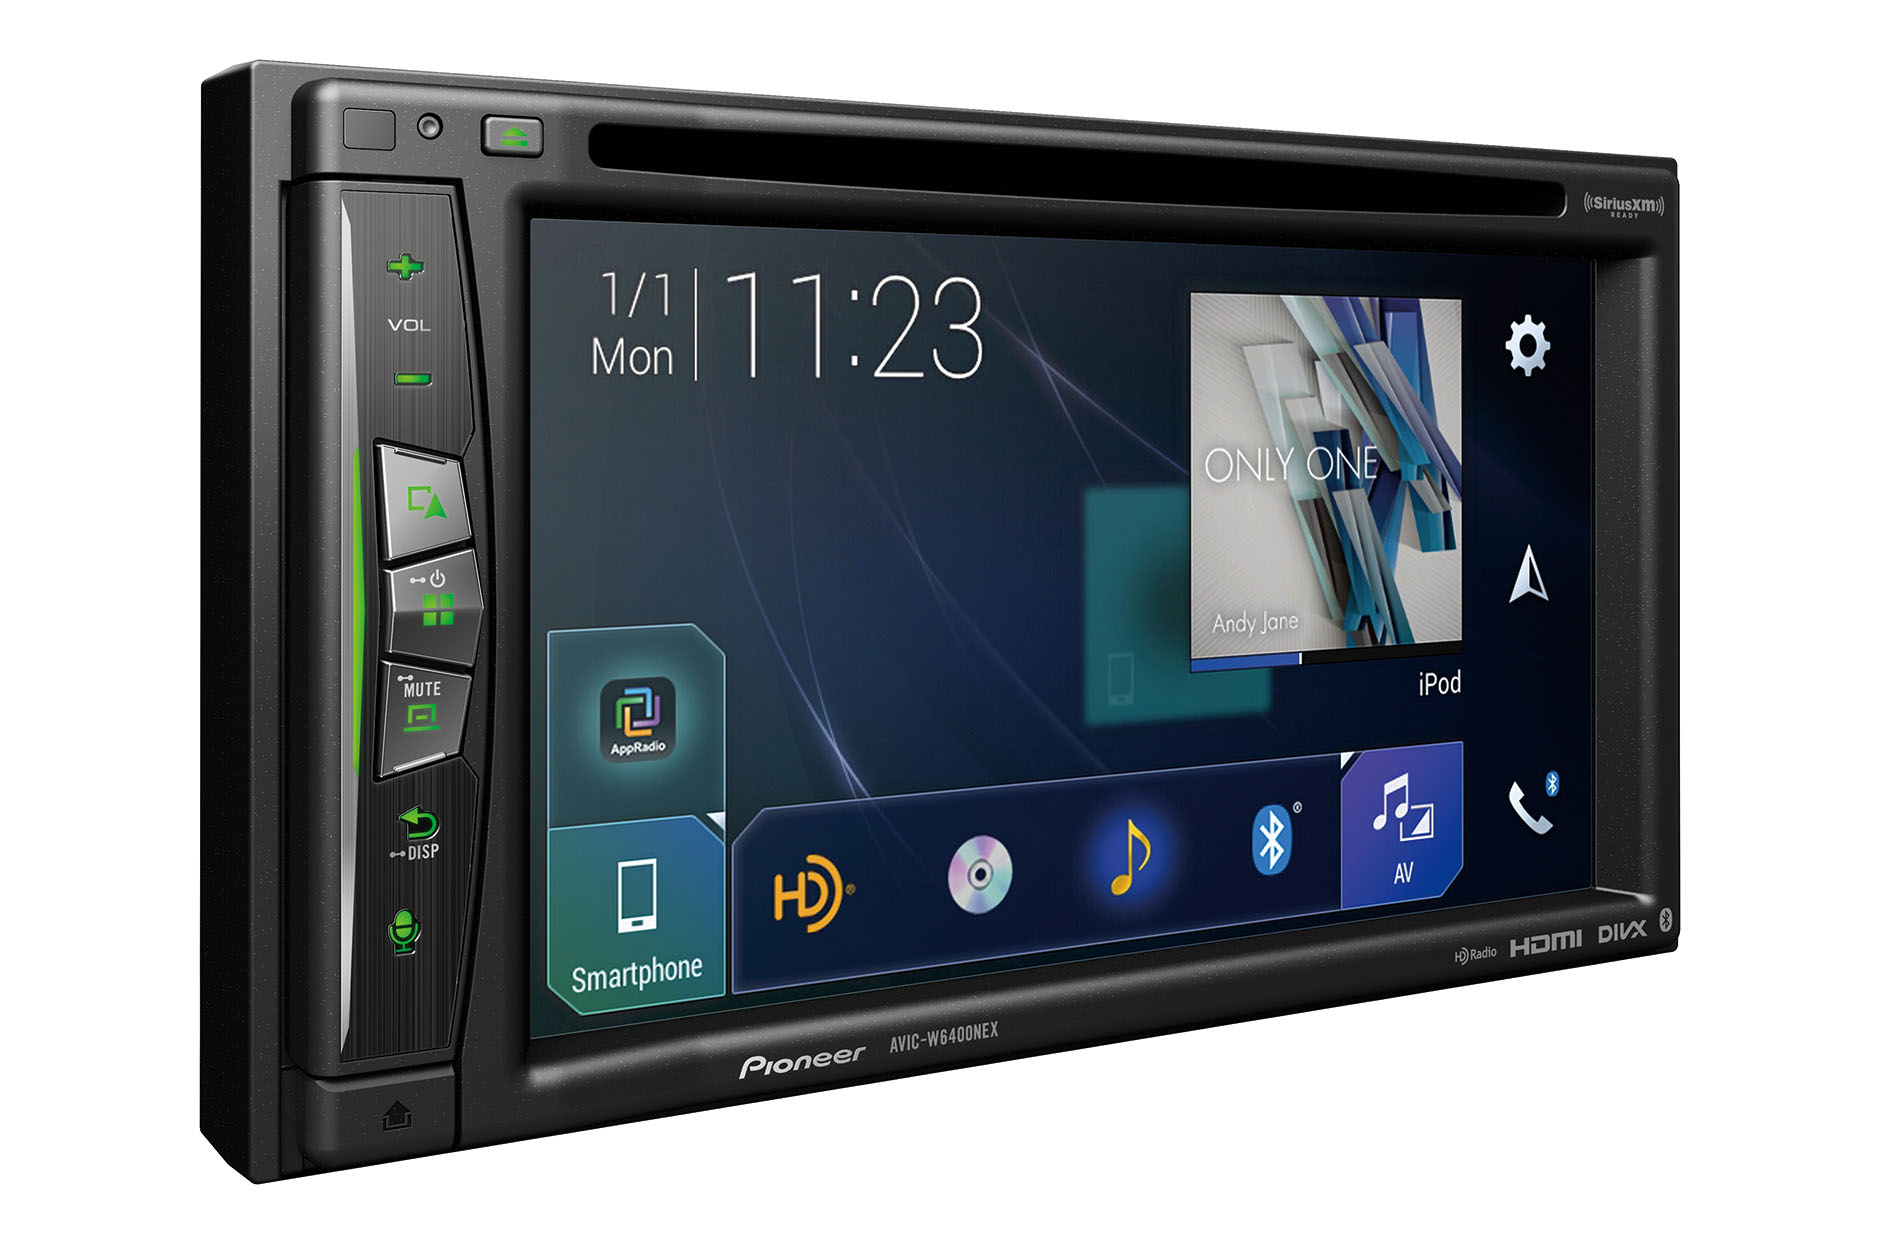 Pioneer's in-dash unit supports both Android Auto Wireless